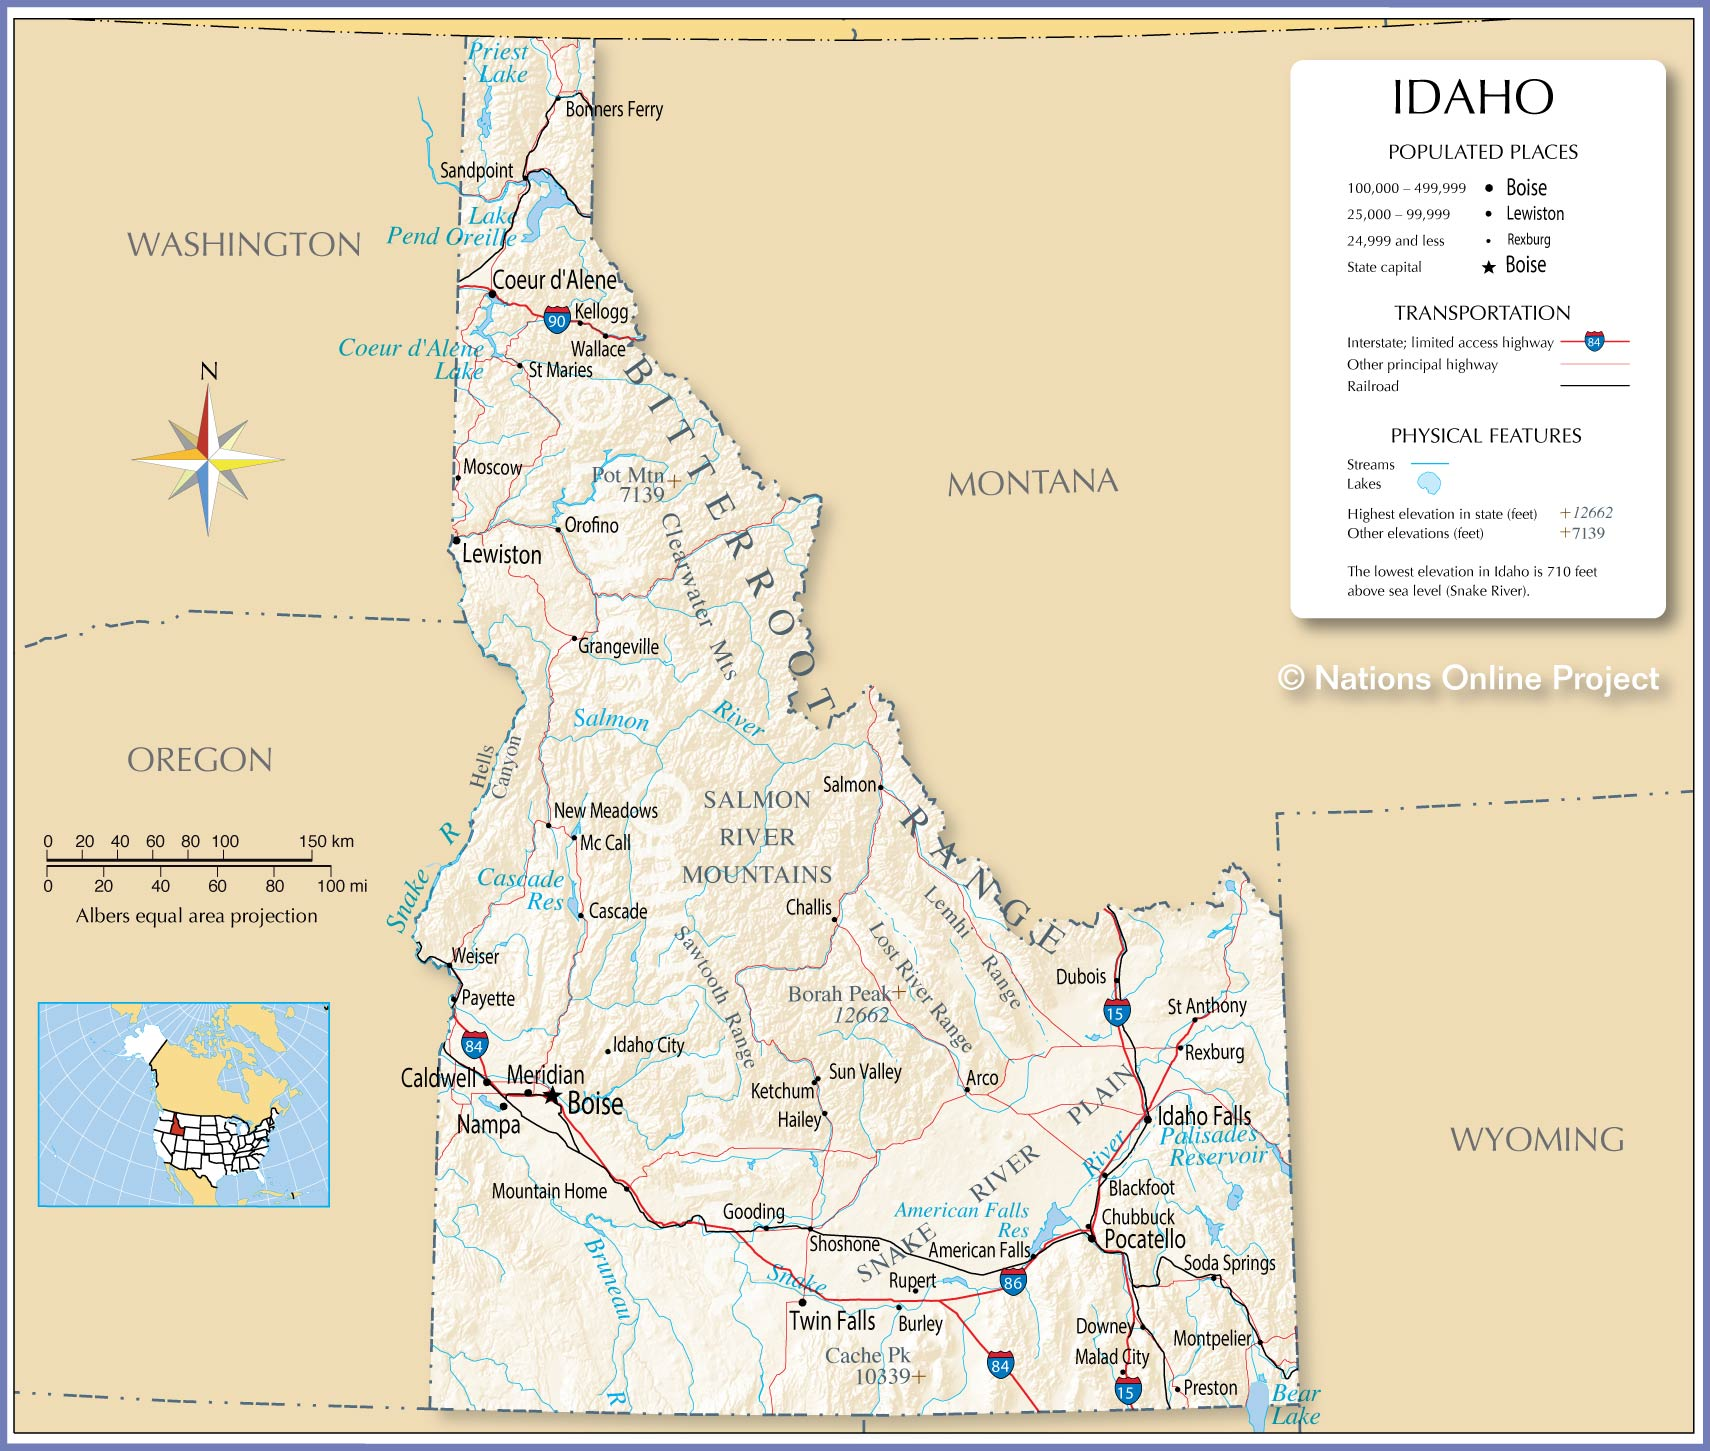 Reference Map Of Idaho USA Nations Online Project - Montana on the us map